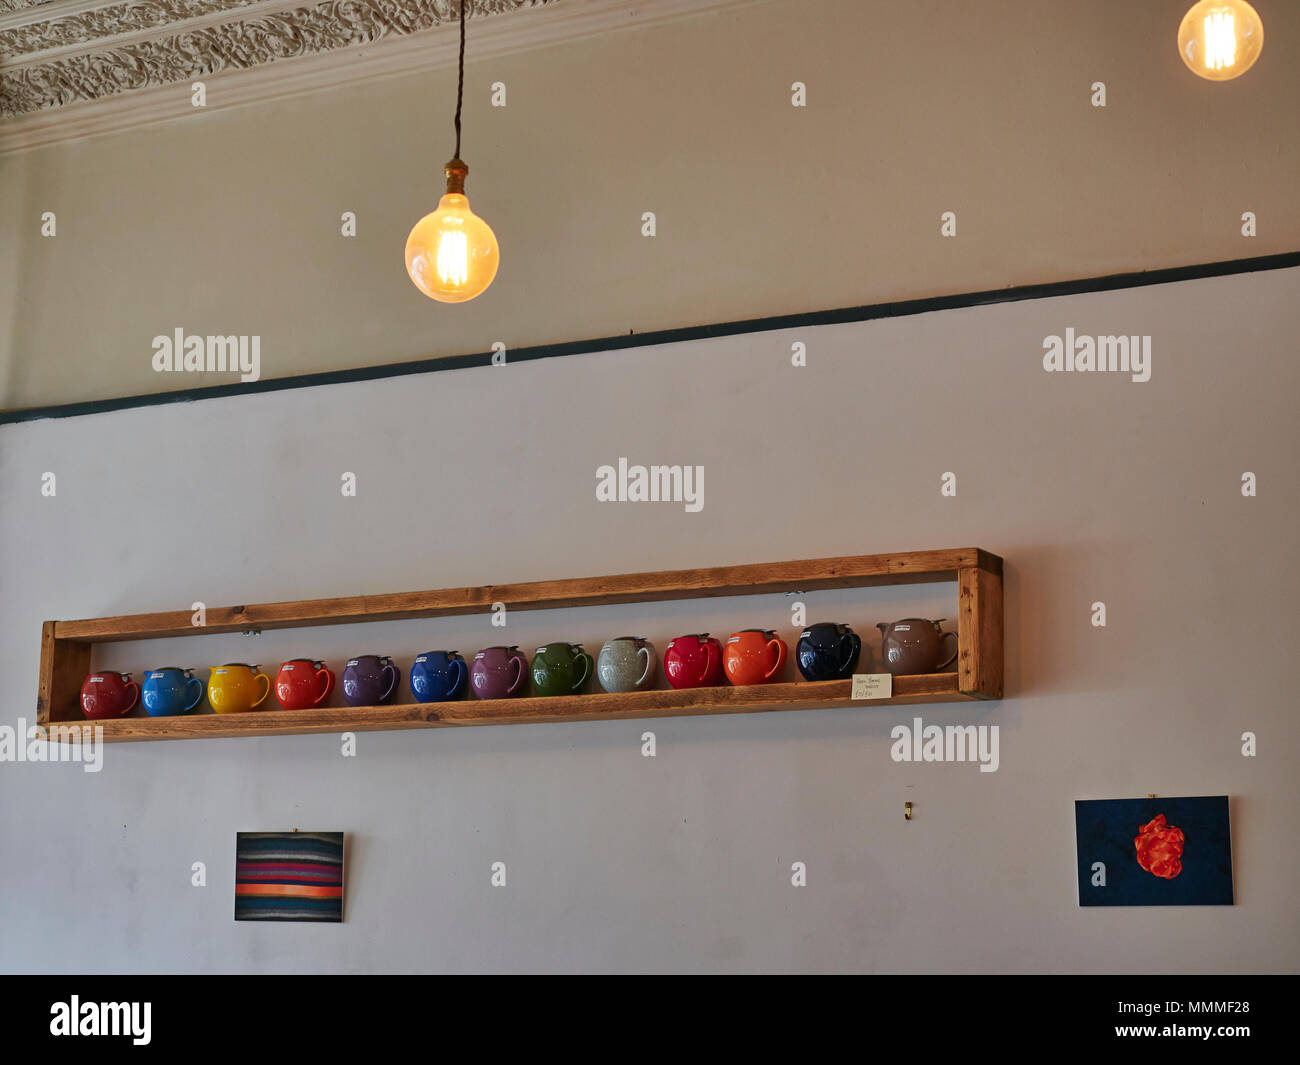 A row of brightly coloured Teapots for Sale on a rustic wooden shelf in the Red Kite Cafe in Edinburgh, Scotland. - Stock Image